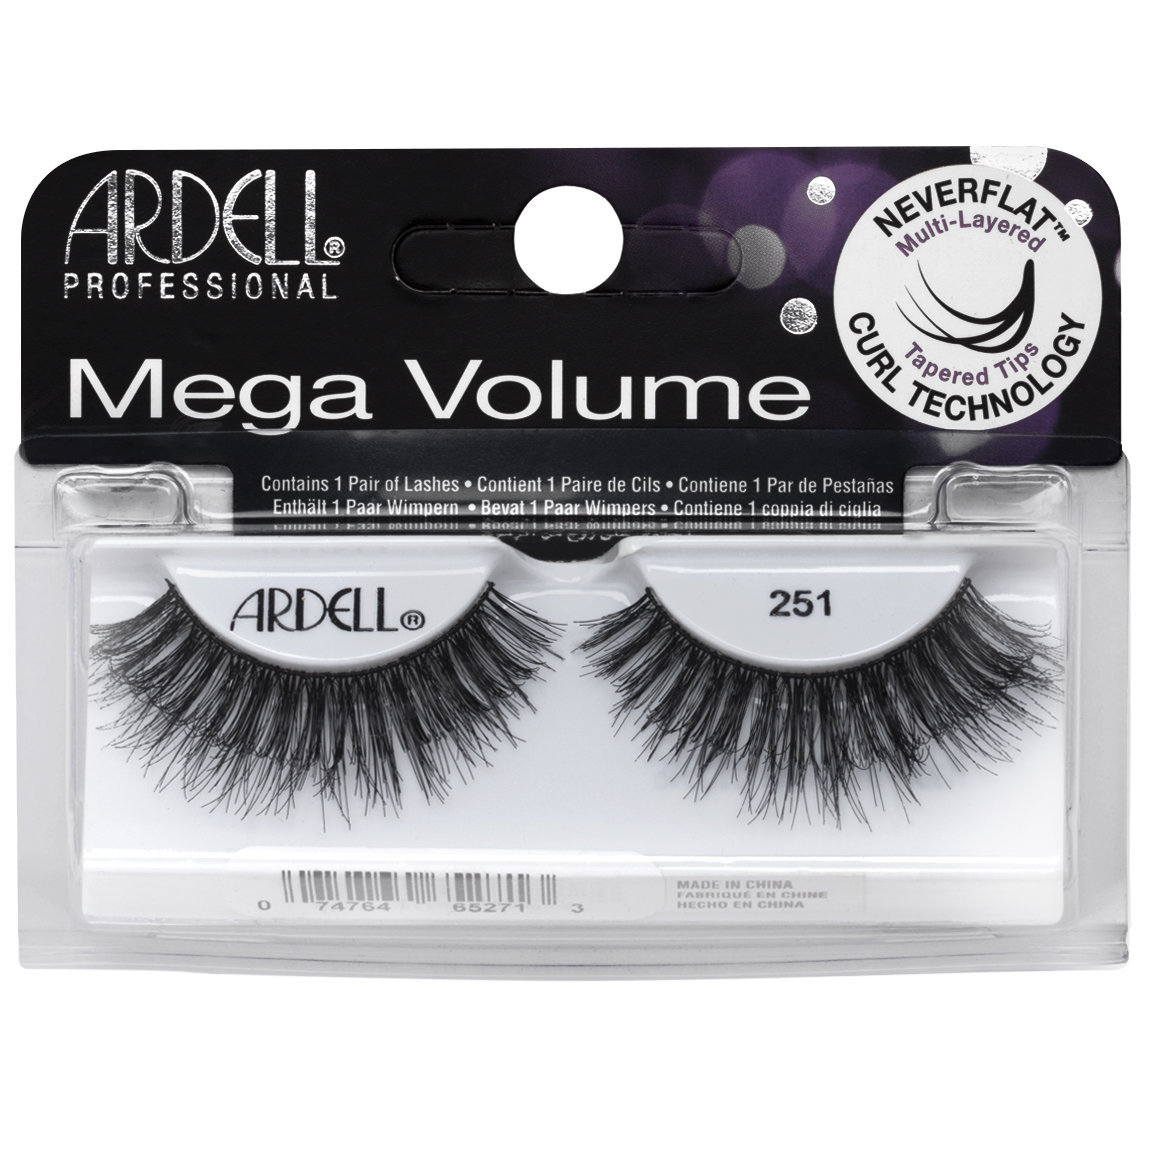 Ardell Mega Volume Lashes 251